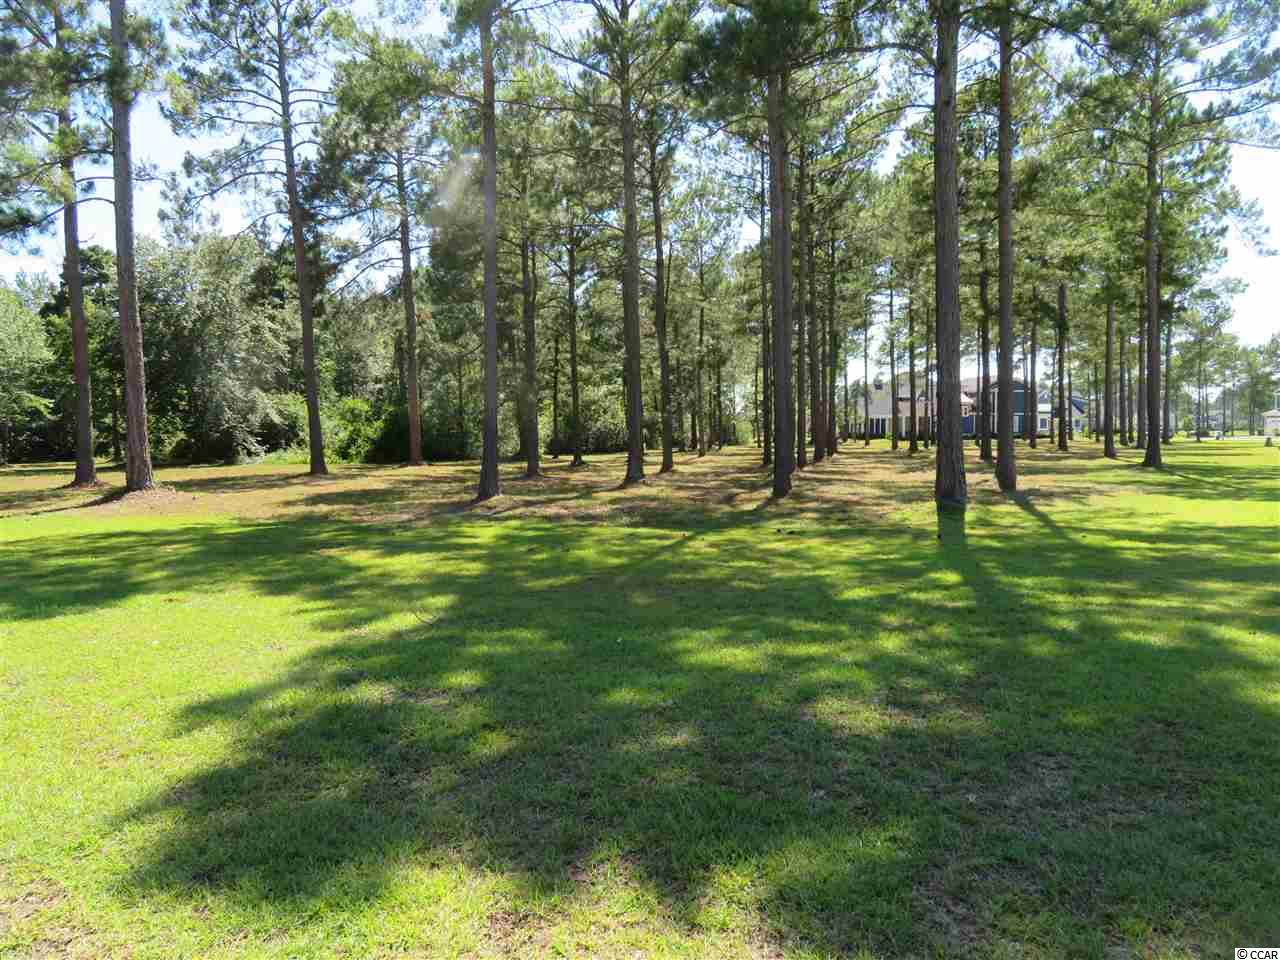 Buy and build on this corner lot in Waterbridge.  Very close to the amenities center and clubhouse.  Build your custom dream home.